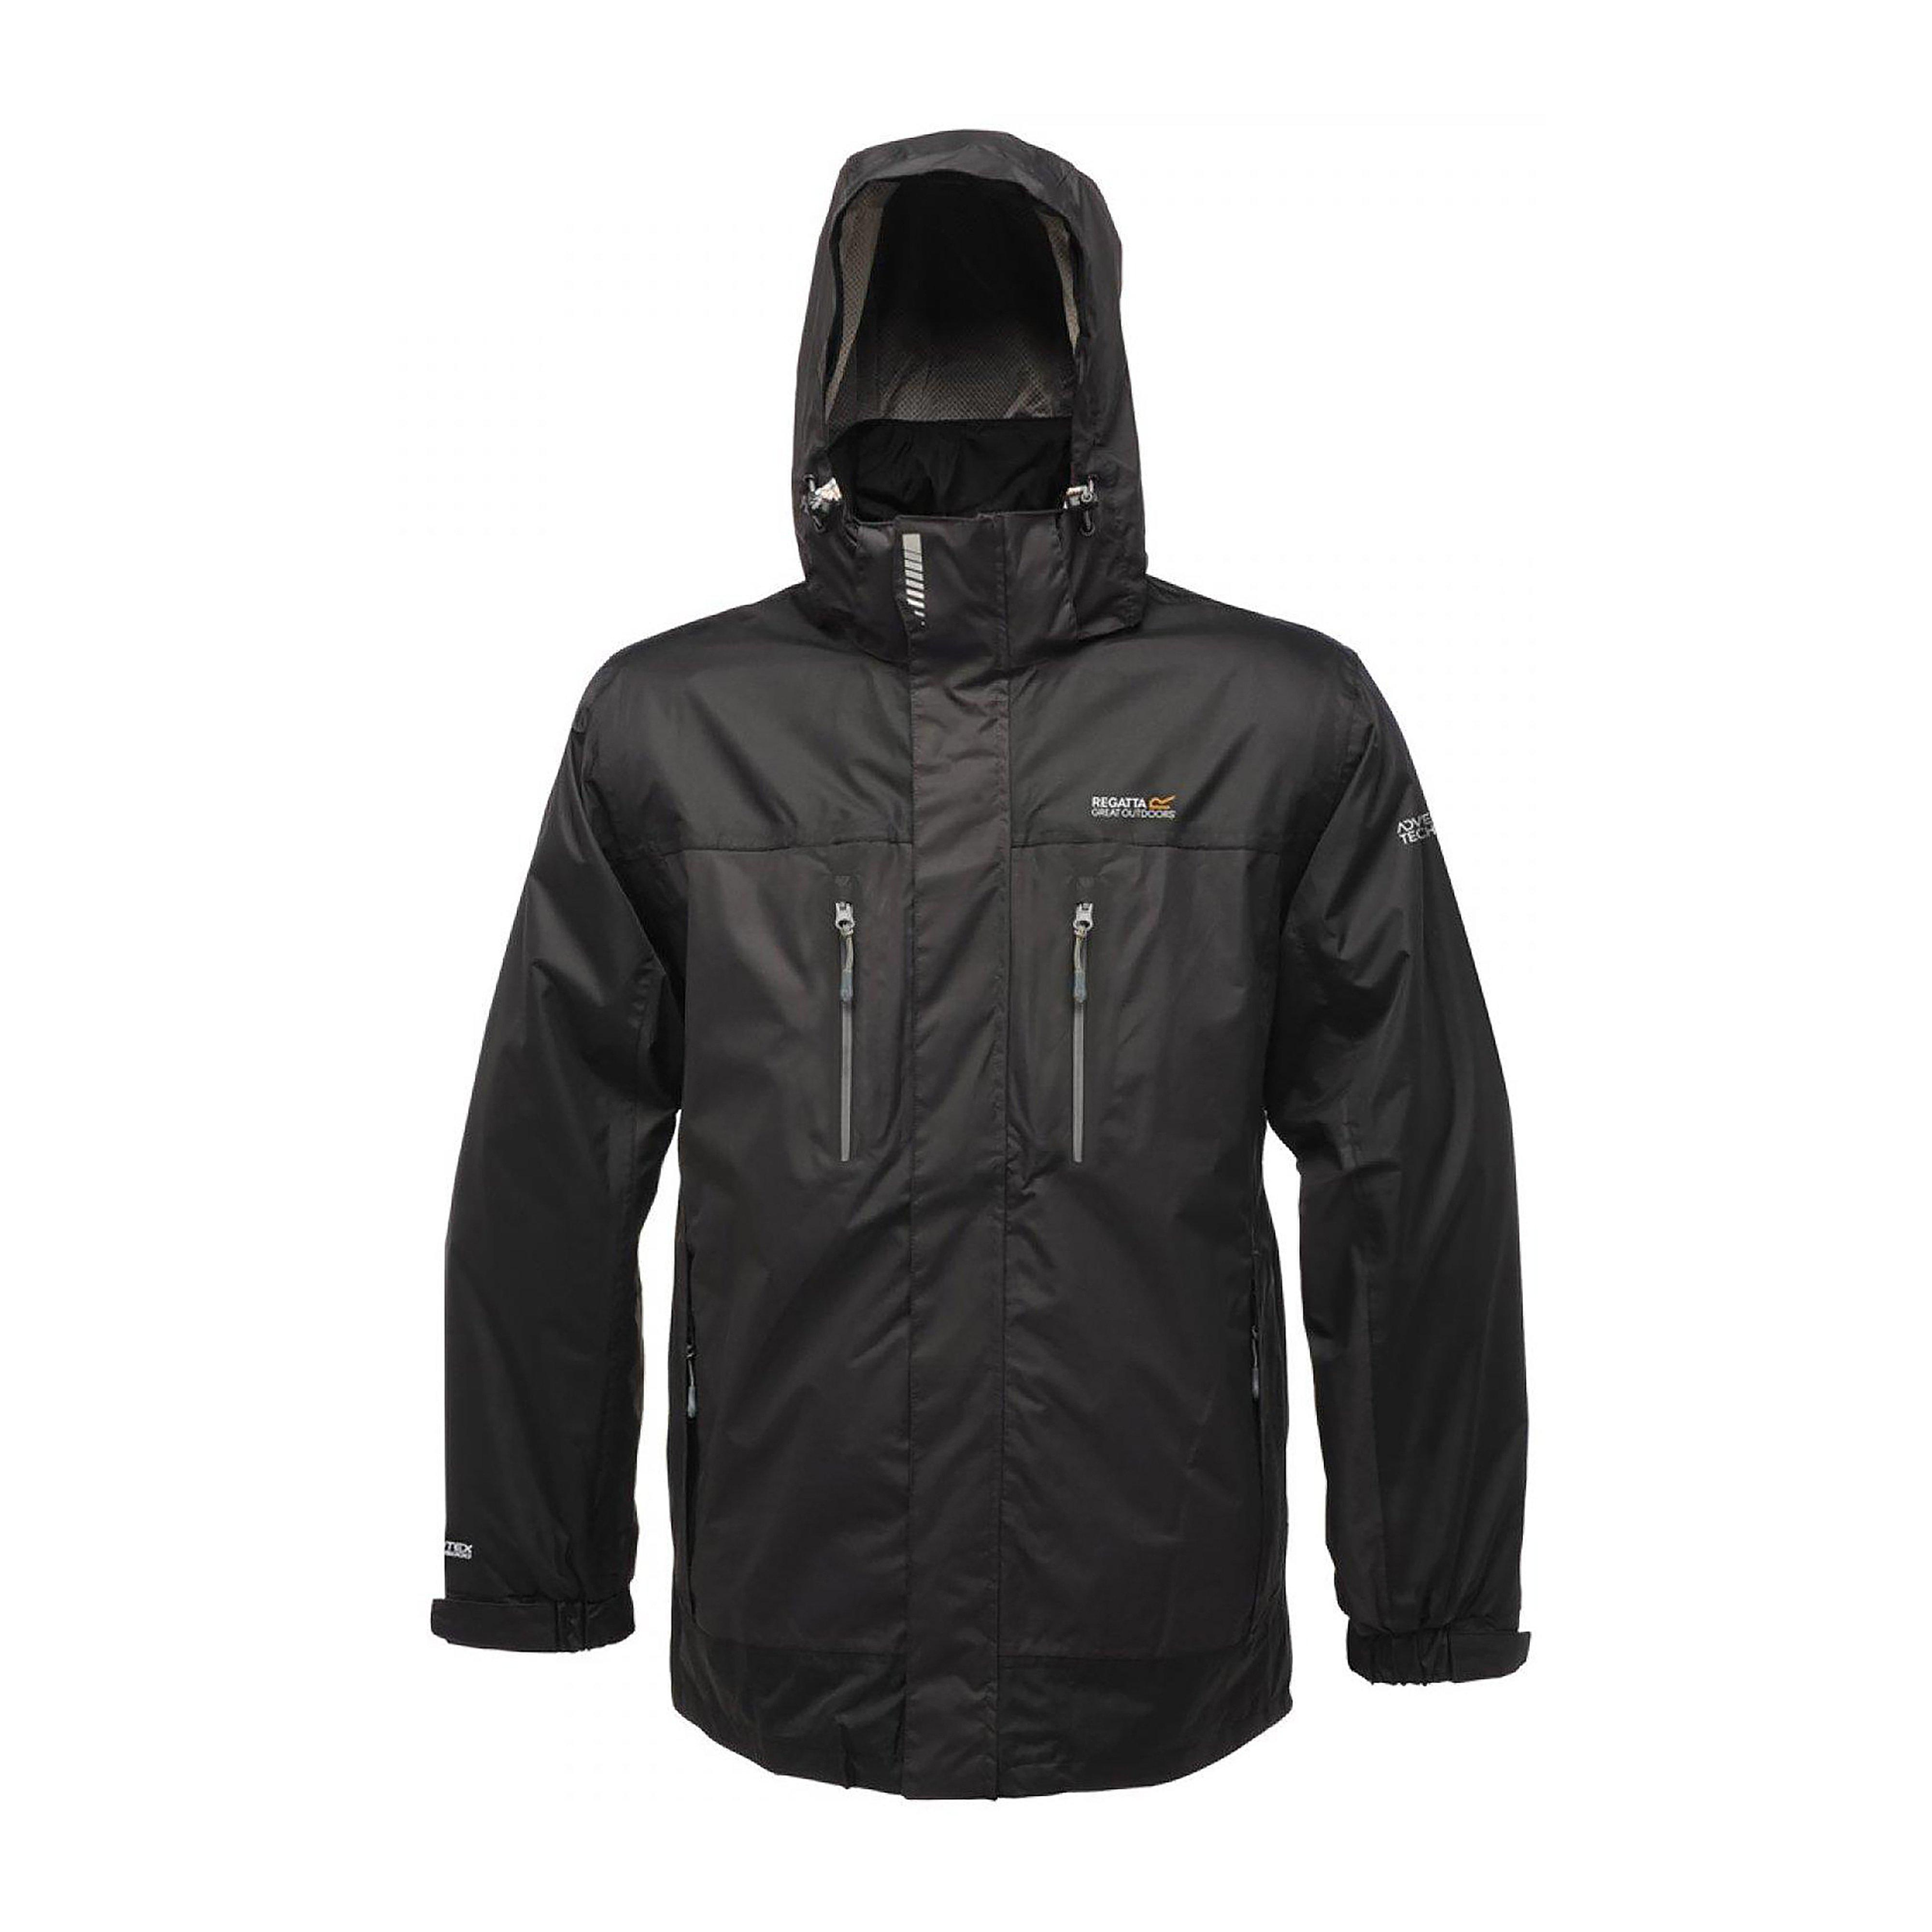 Regatta Mens Calderdale Waterproof Jacket Grey